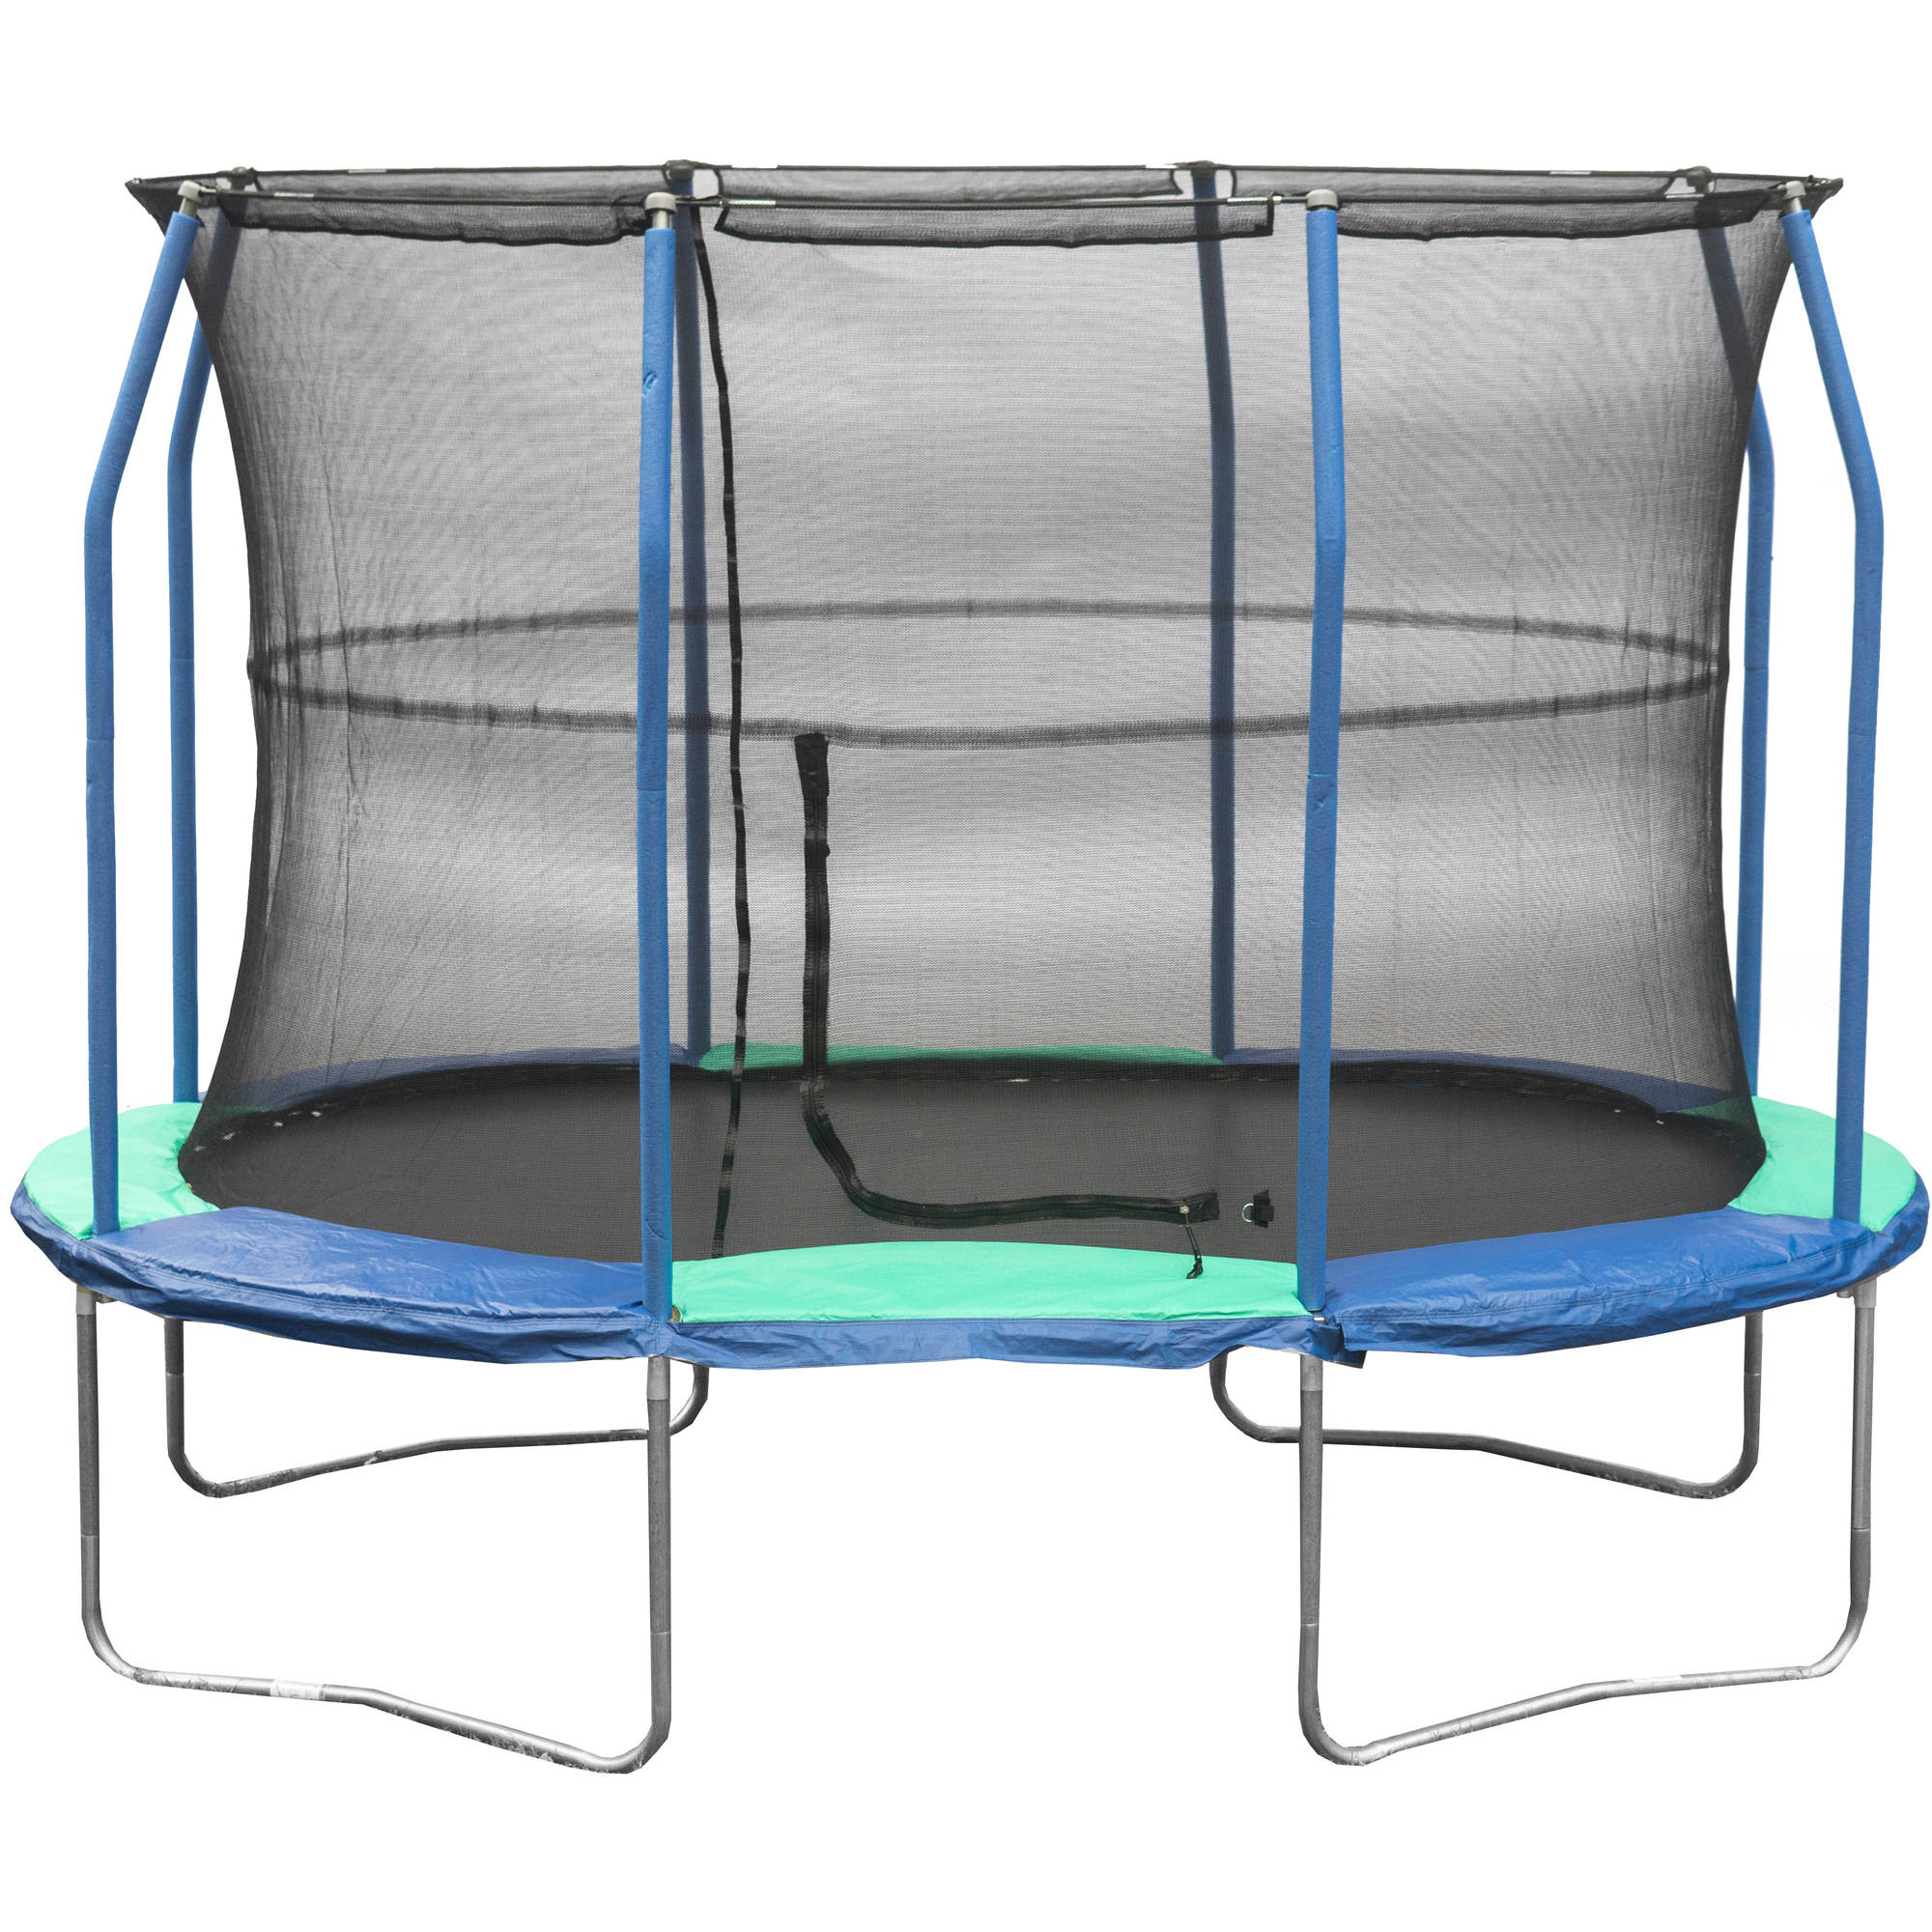 Jumpking Oval Trampoline 8 x 11.5 Foot Trampoline, with Safety Enclosure, Blue/Green